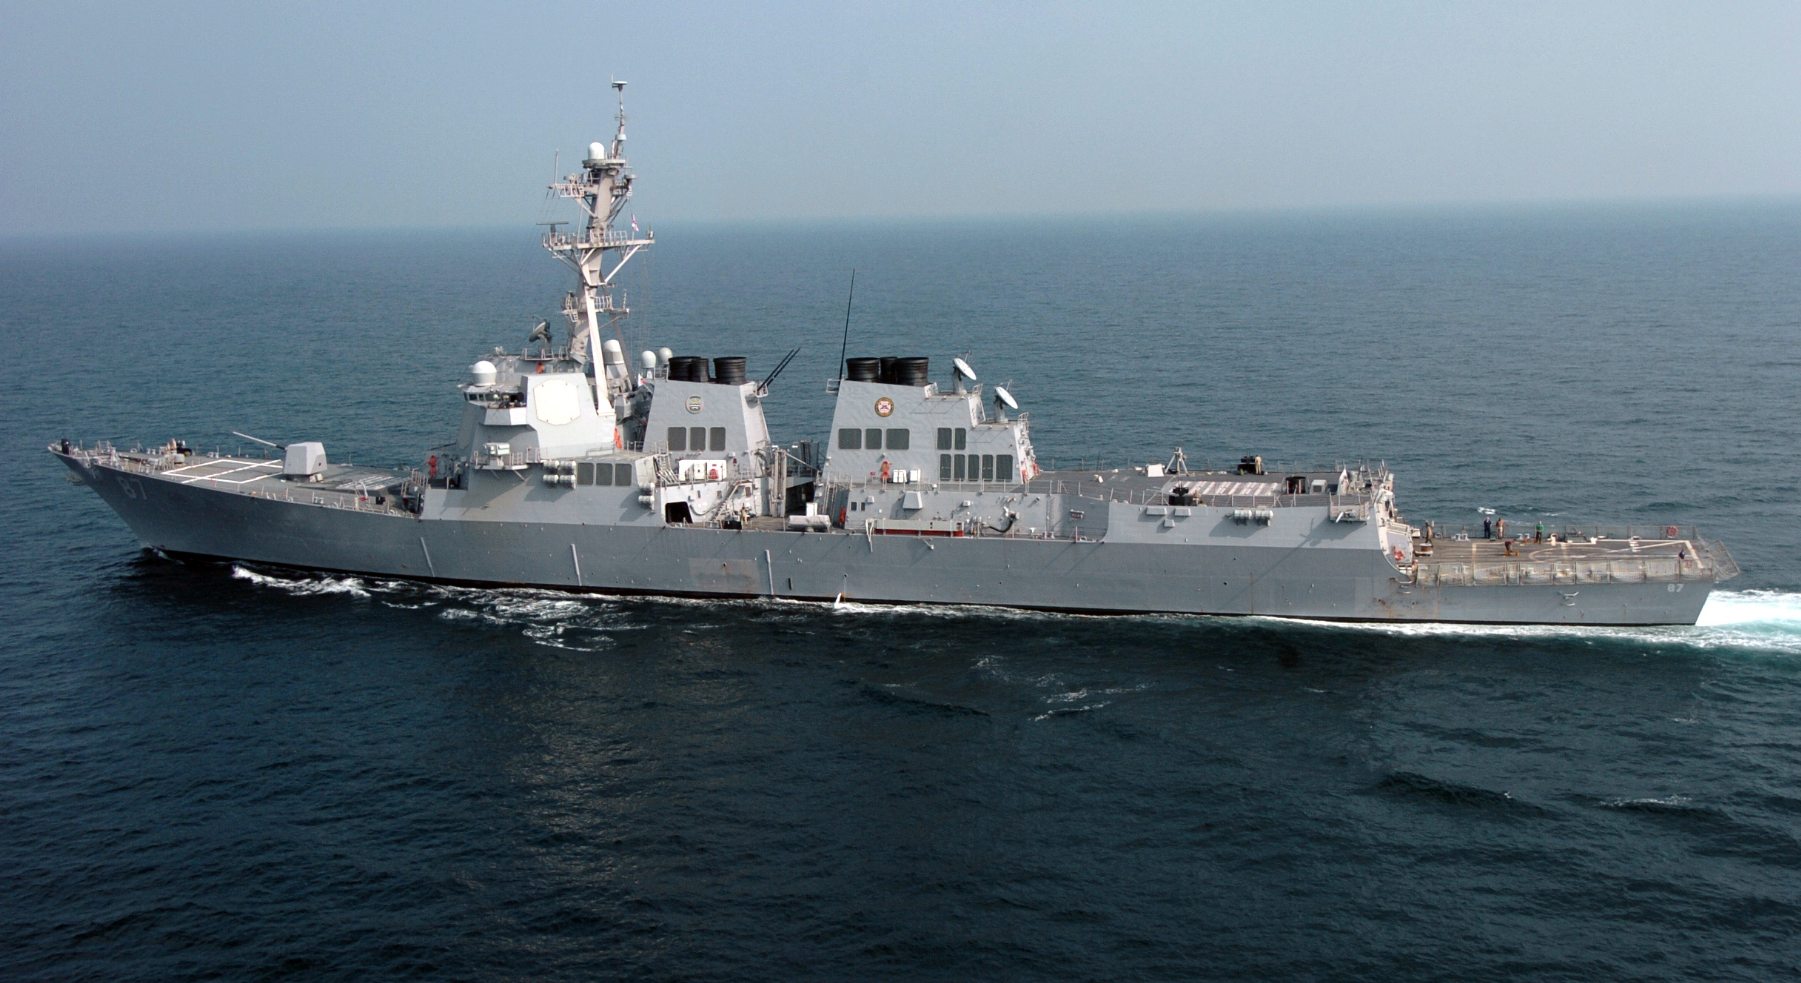 BREAKING: Missiles Fired At U.S. Navy Ship For 3rd Time Off Coast Of Yemen Featured